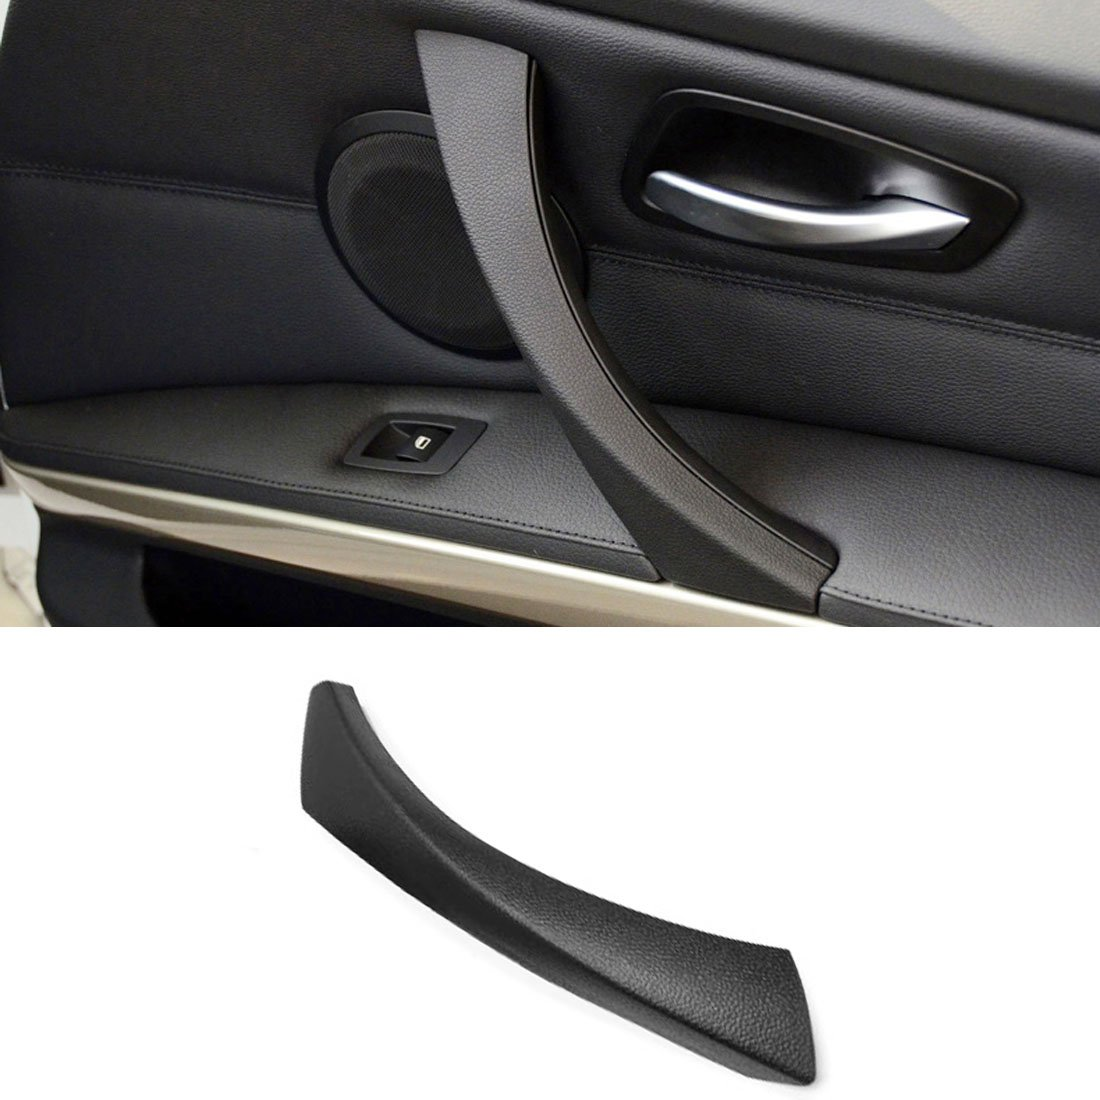 For BMW 3 Series E90/E91 Door Clasp Handle,Jaronx Right Front/Right Rear Door Handles Outer Cover Interior Door Trim Covers (Fits:BMW 323 325 328 330 335)